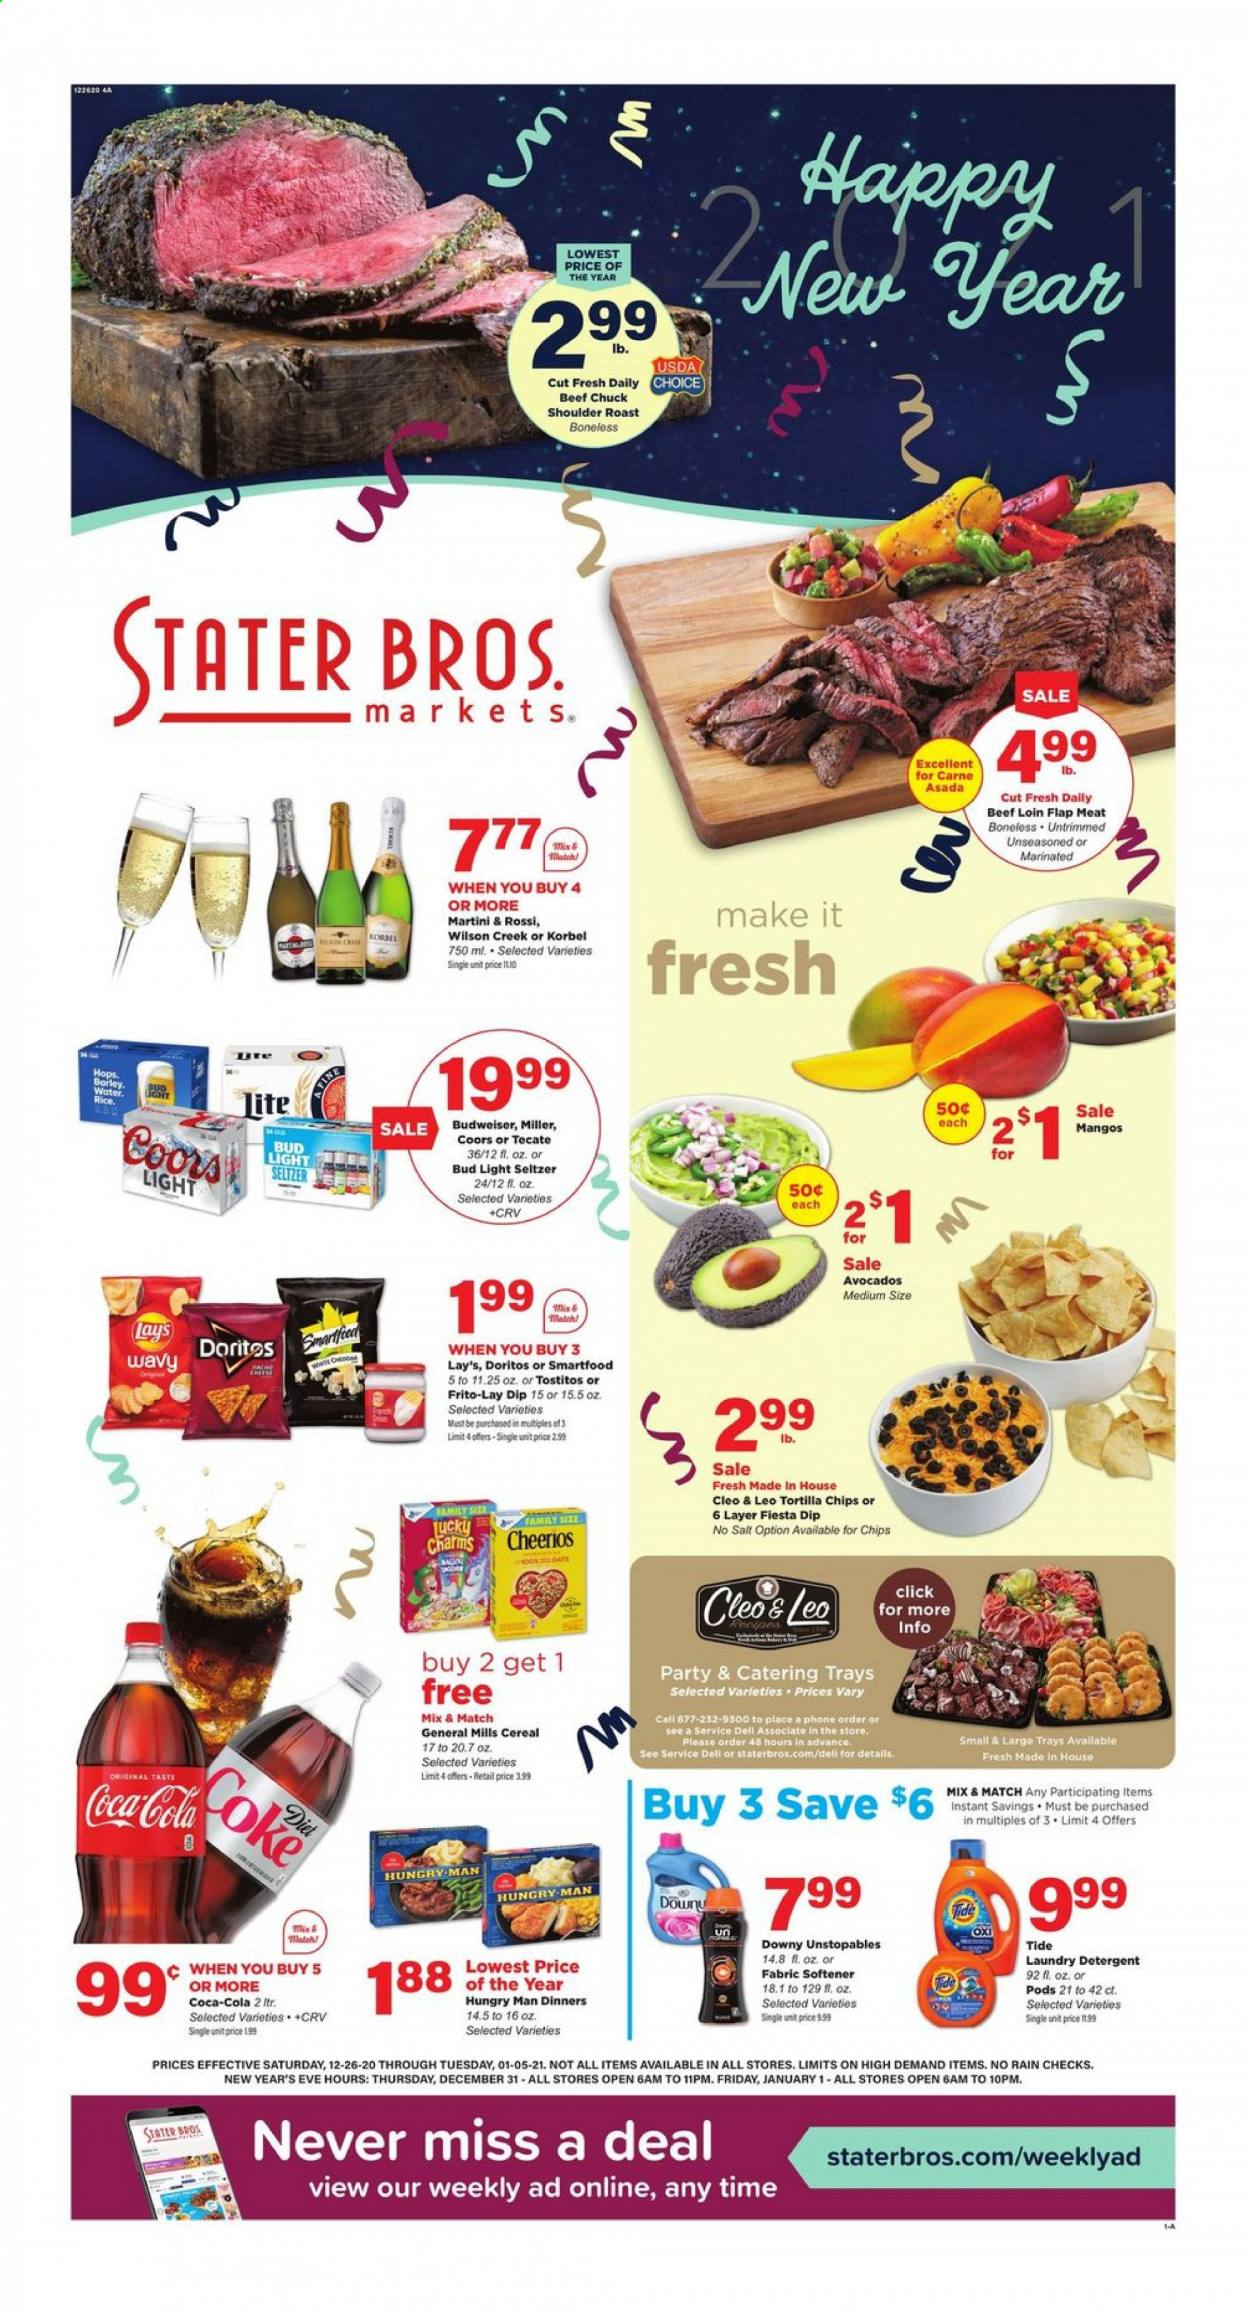 Stater Bros. Flyer - 12.26.2020 - 01.05.2021 - Sales products - avocado, barley, beef meat, Budweiser, cereals, coca-cola, Dell, detergent, Doritos, Downy, rice, seltzer, Tide, tortilla chips, Unstopables, Wilson, cheerios, oats, onion, chips, softener, salt, Bud Light, Lay's, Coors, laundry detergent, phone. Page 1.